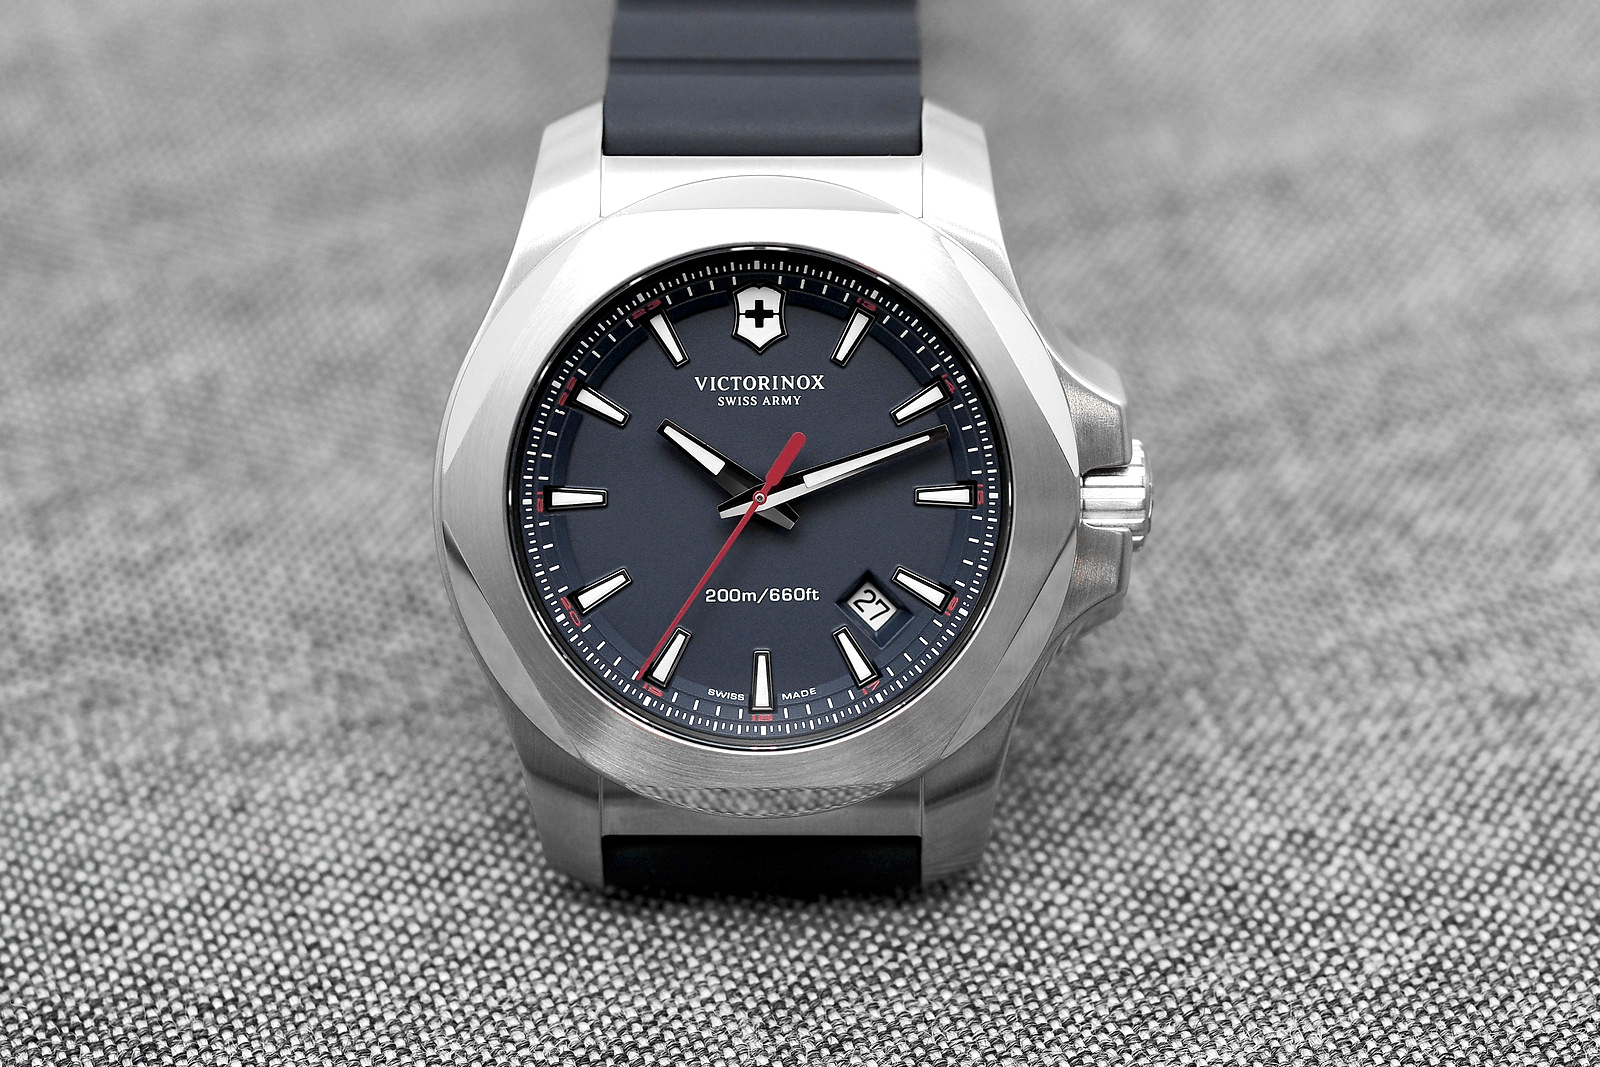 Most Rugged Watches